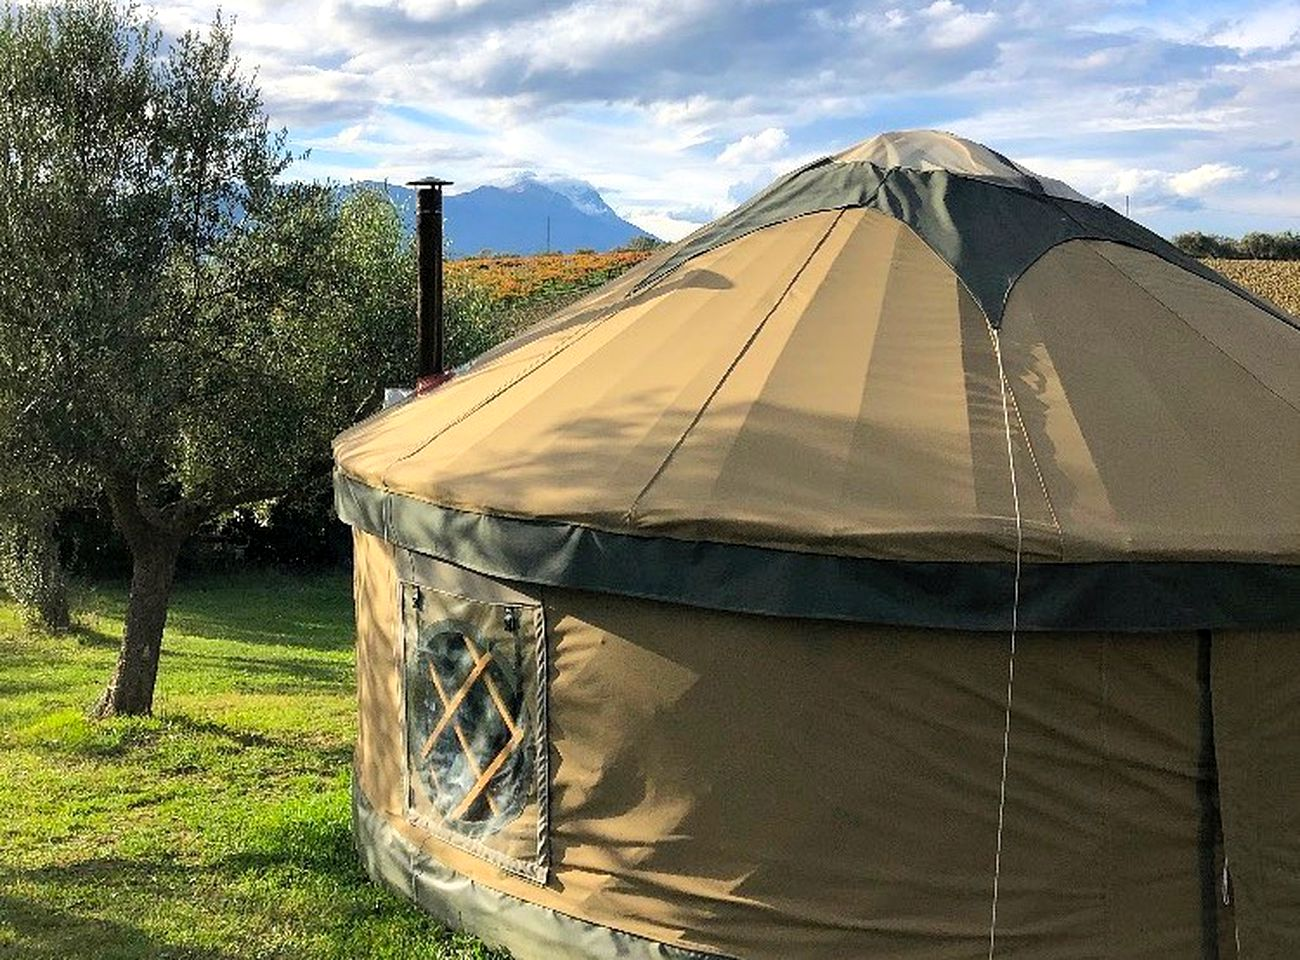 Luxury yurt rental that's perfect for glamping in Italy